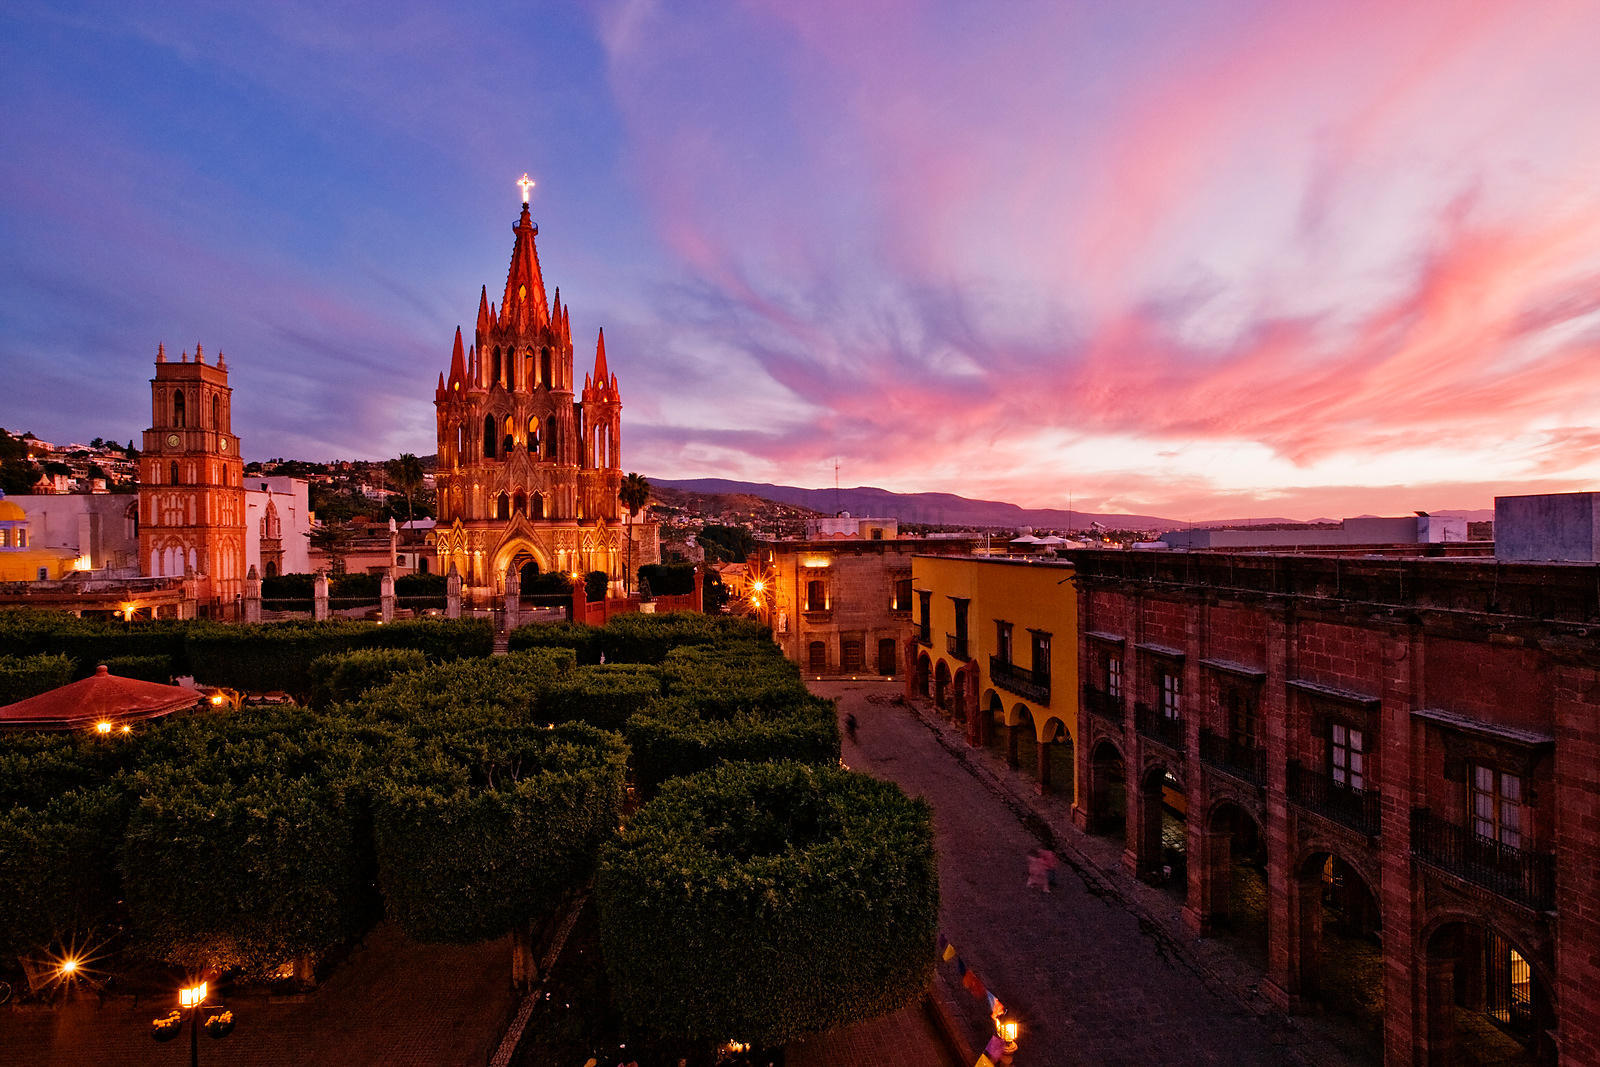 The Jardin and Parroquia at Dusk